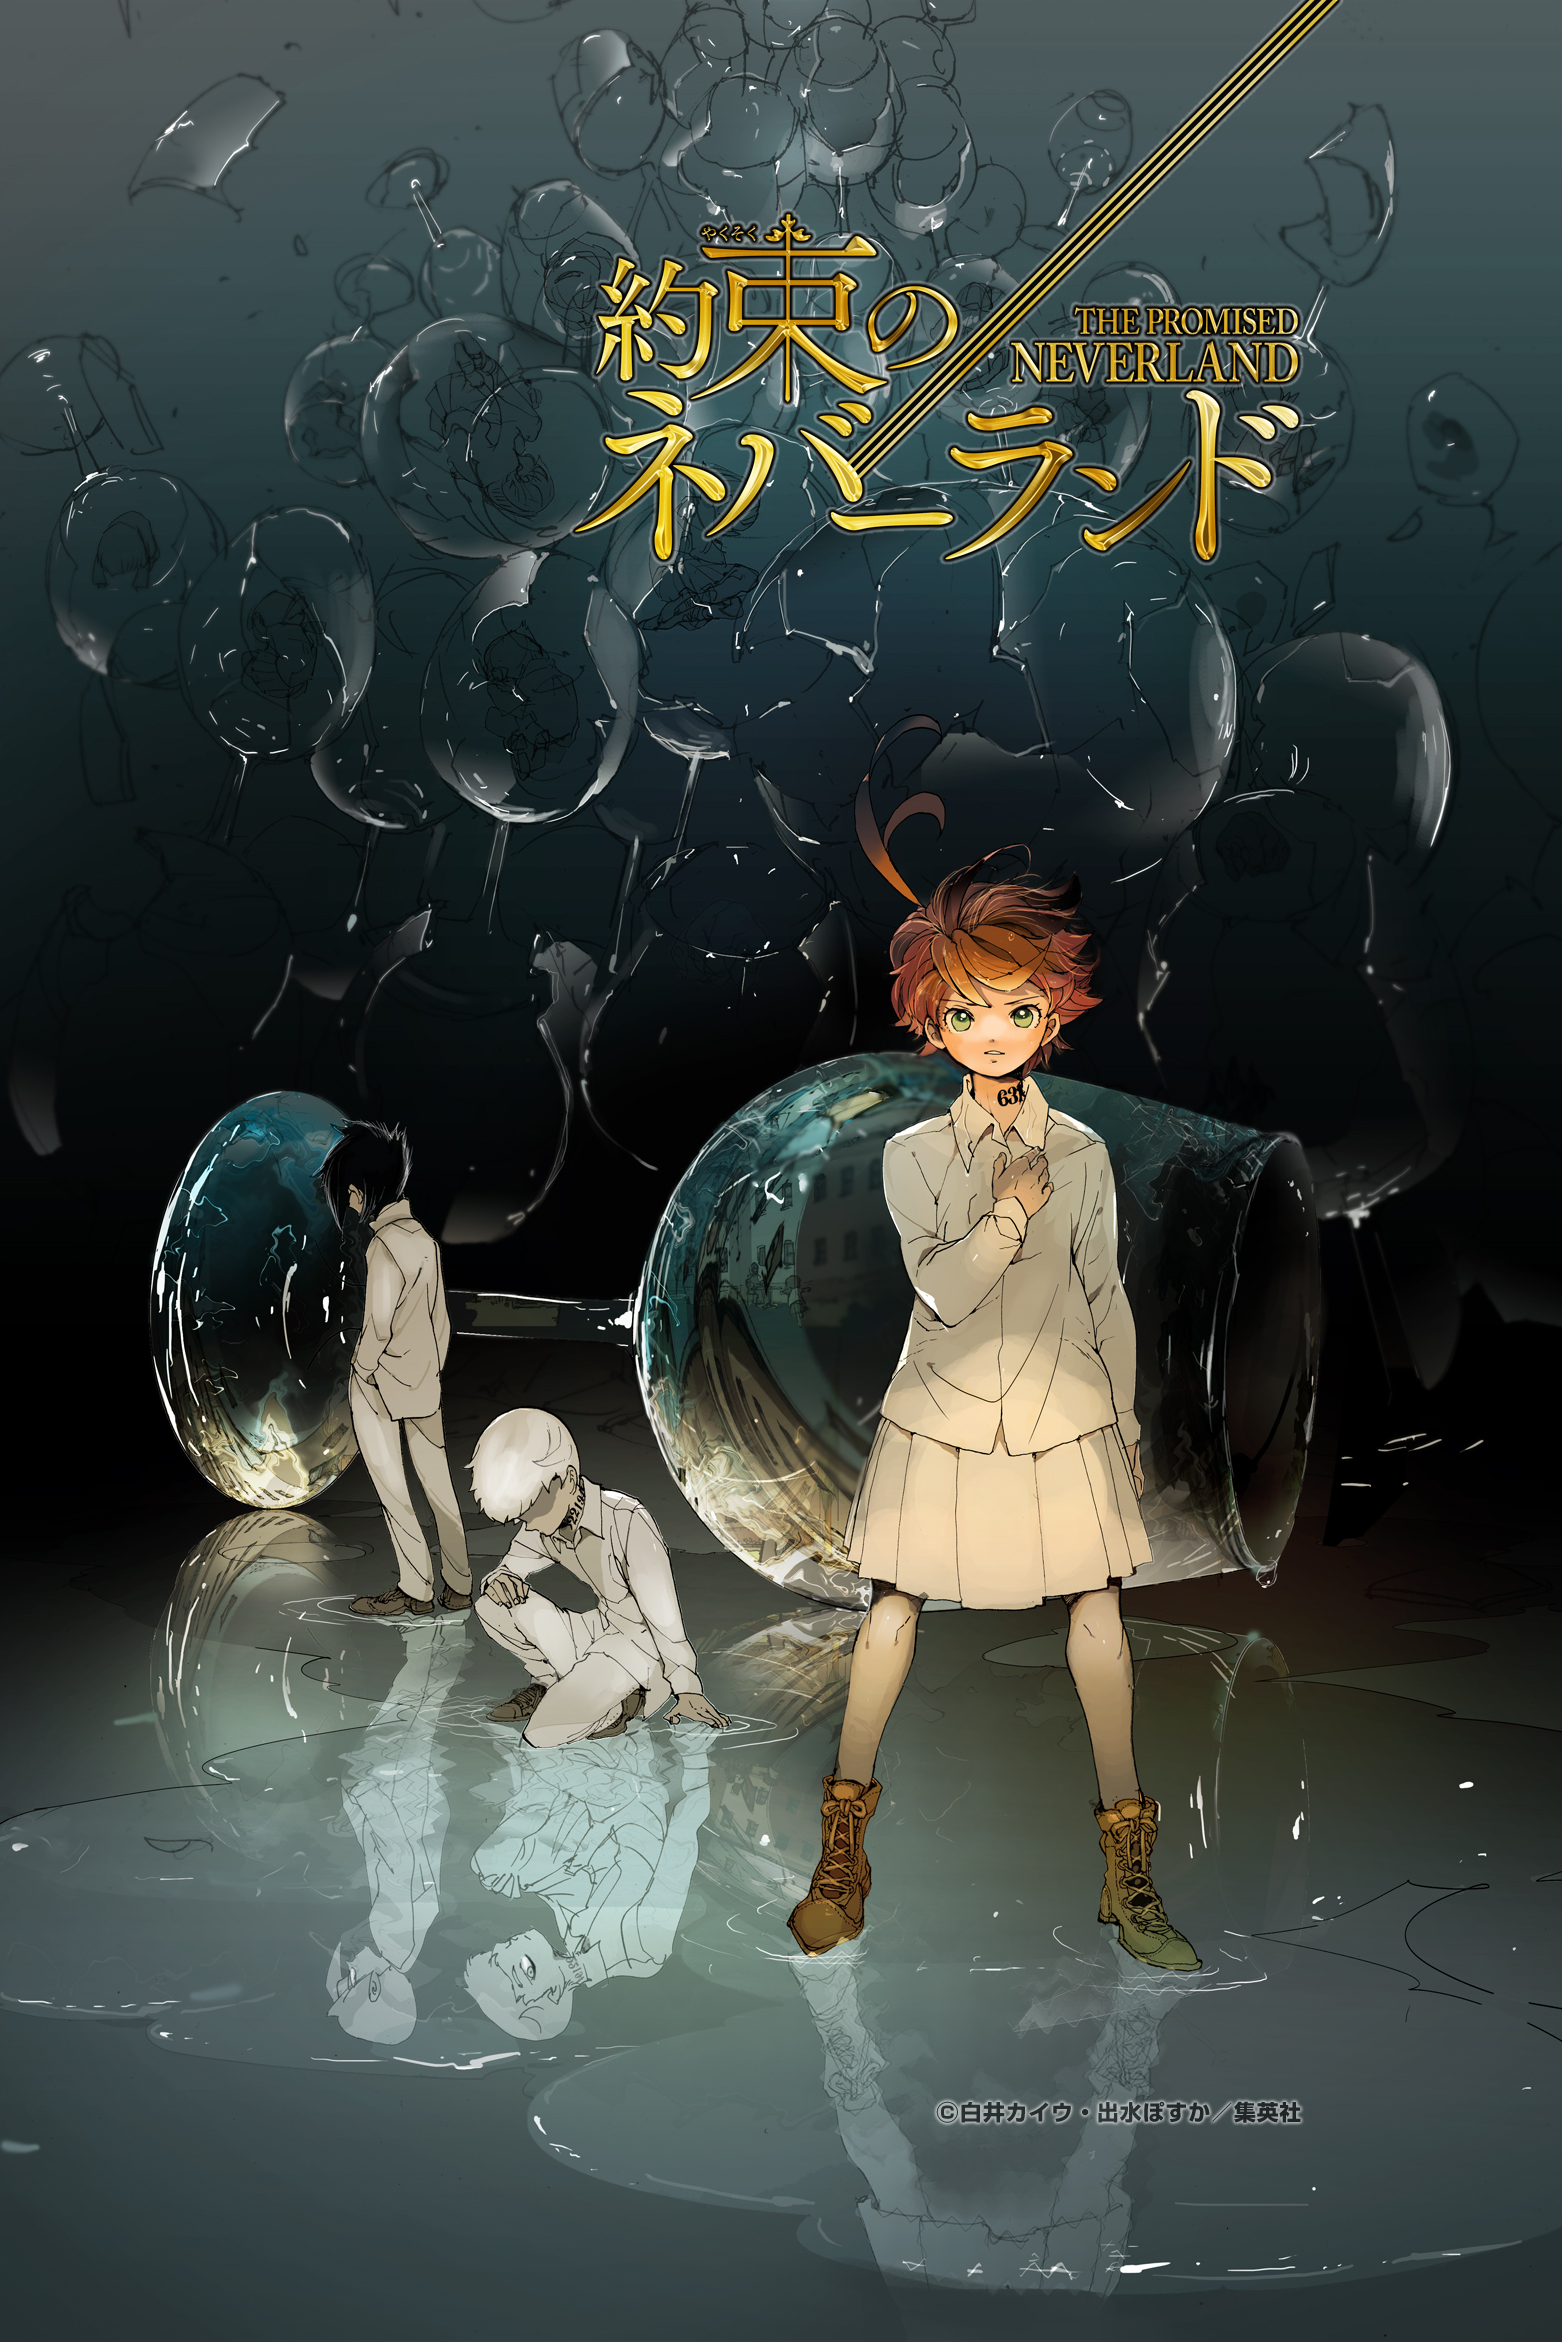 Top Promised Neverland 4k Wallpaper 2019 For Android Apk Download